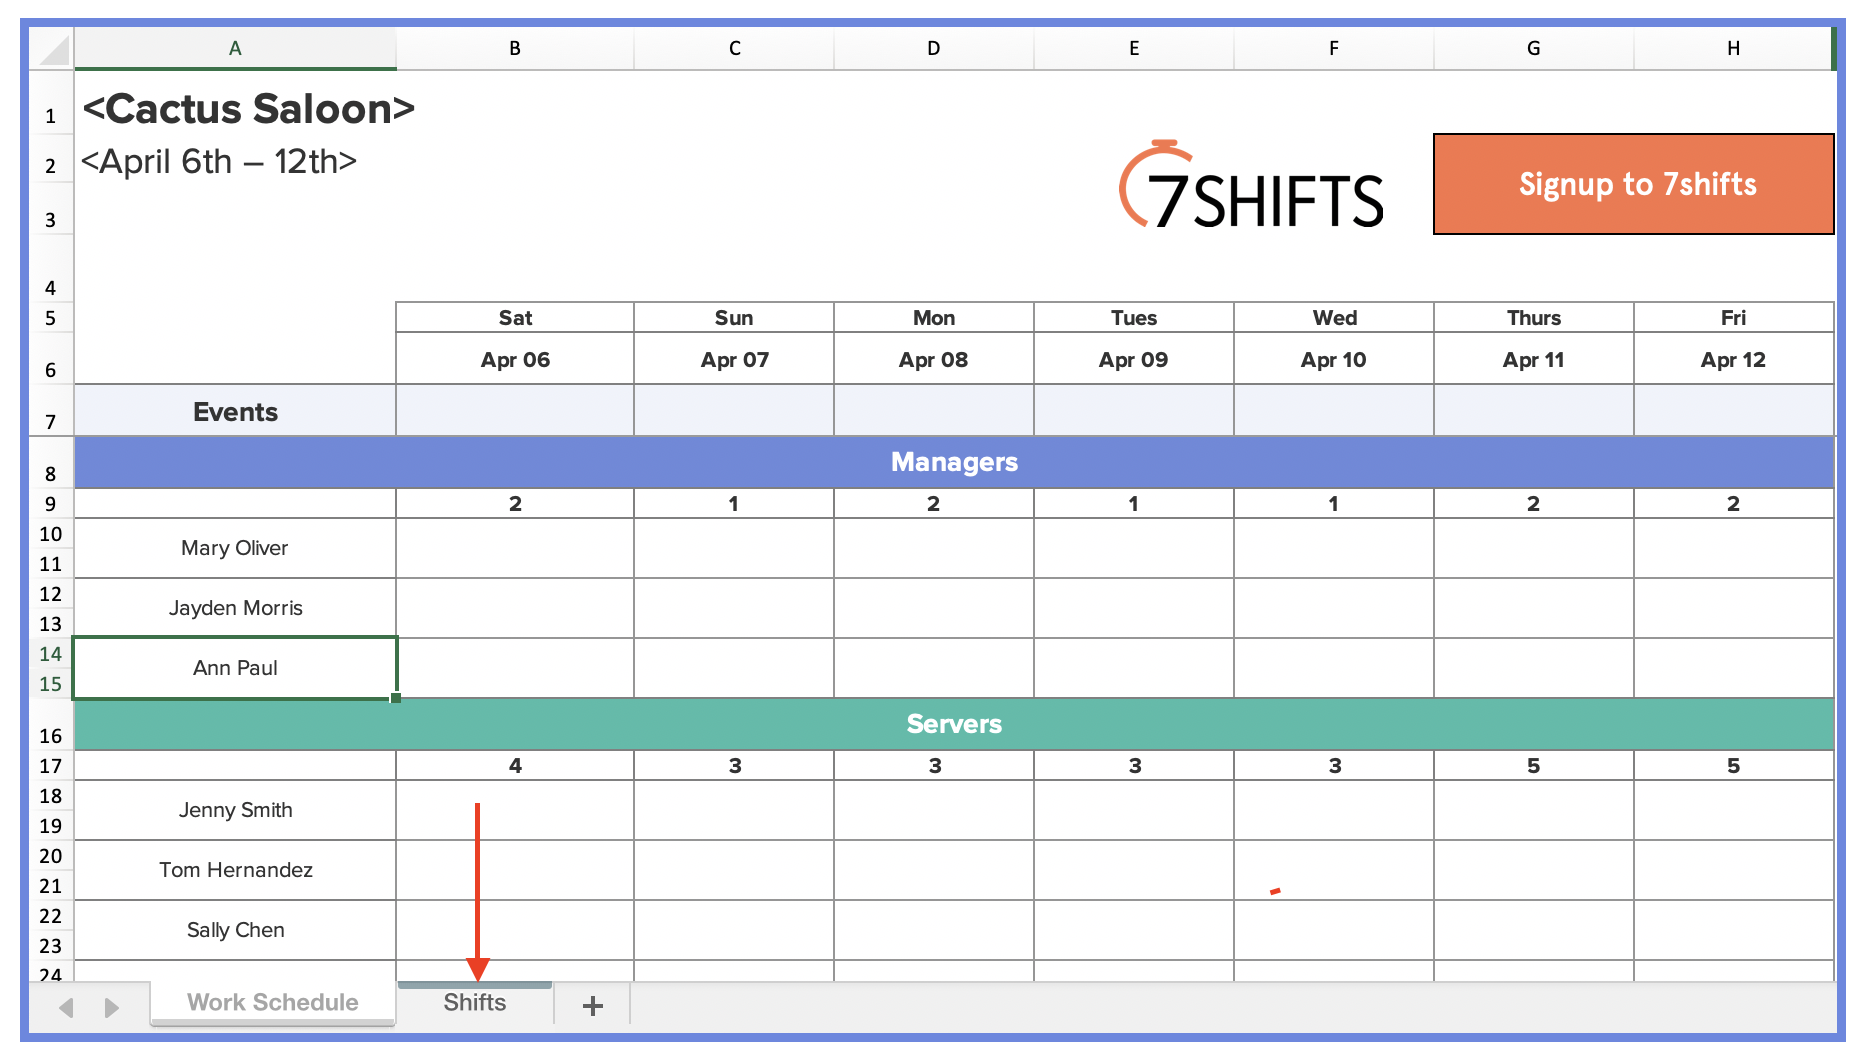 Restaurant Shift Schedule Template